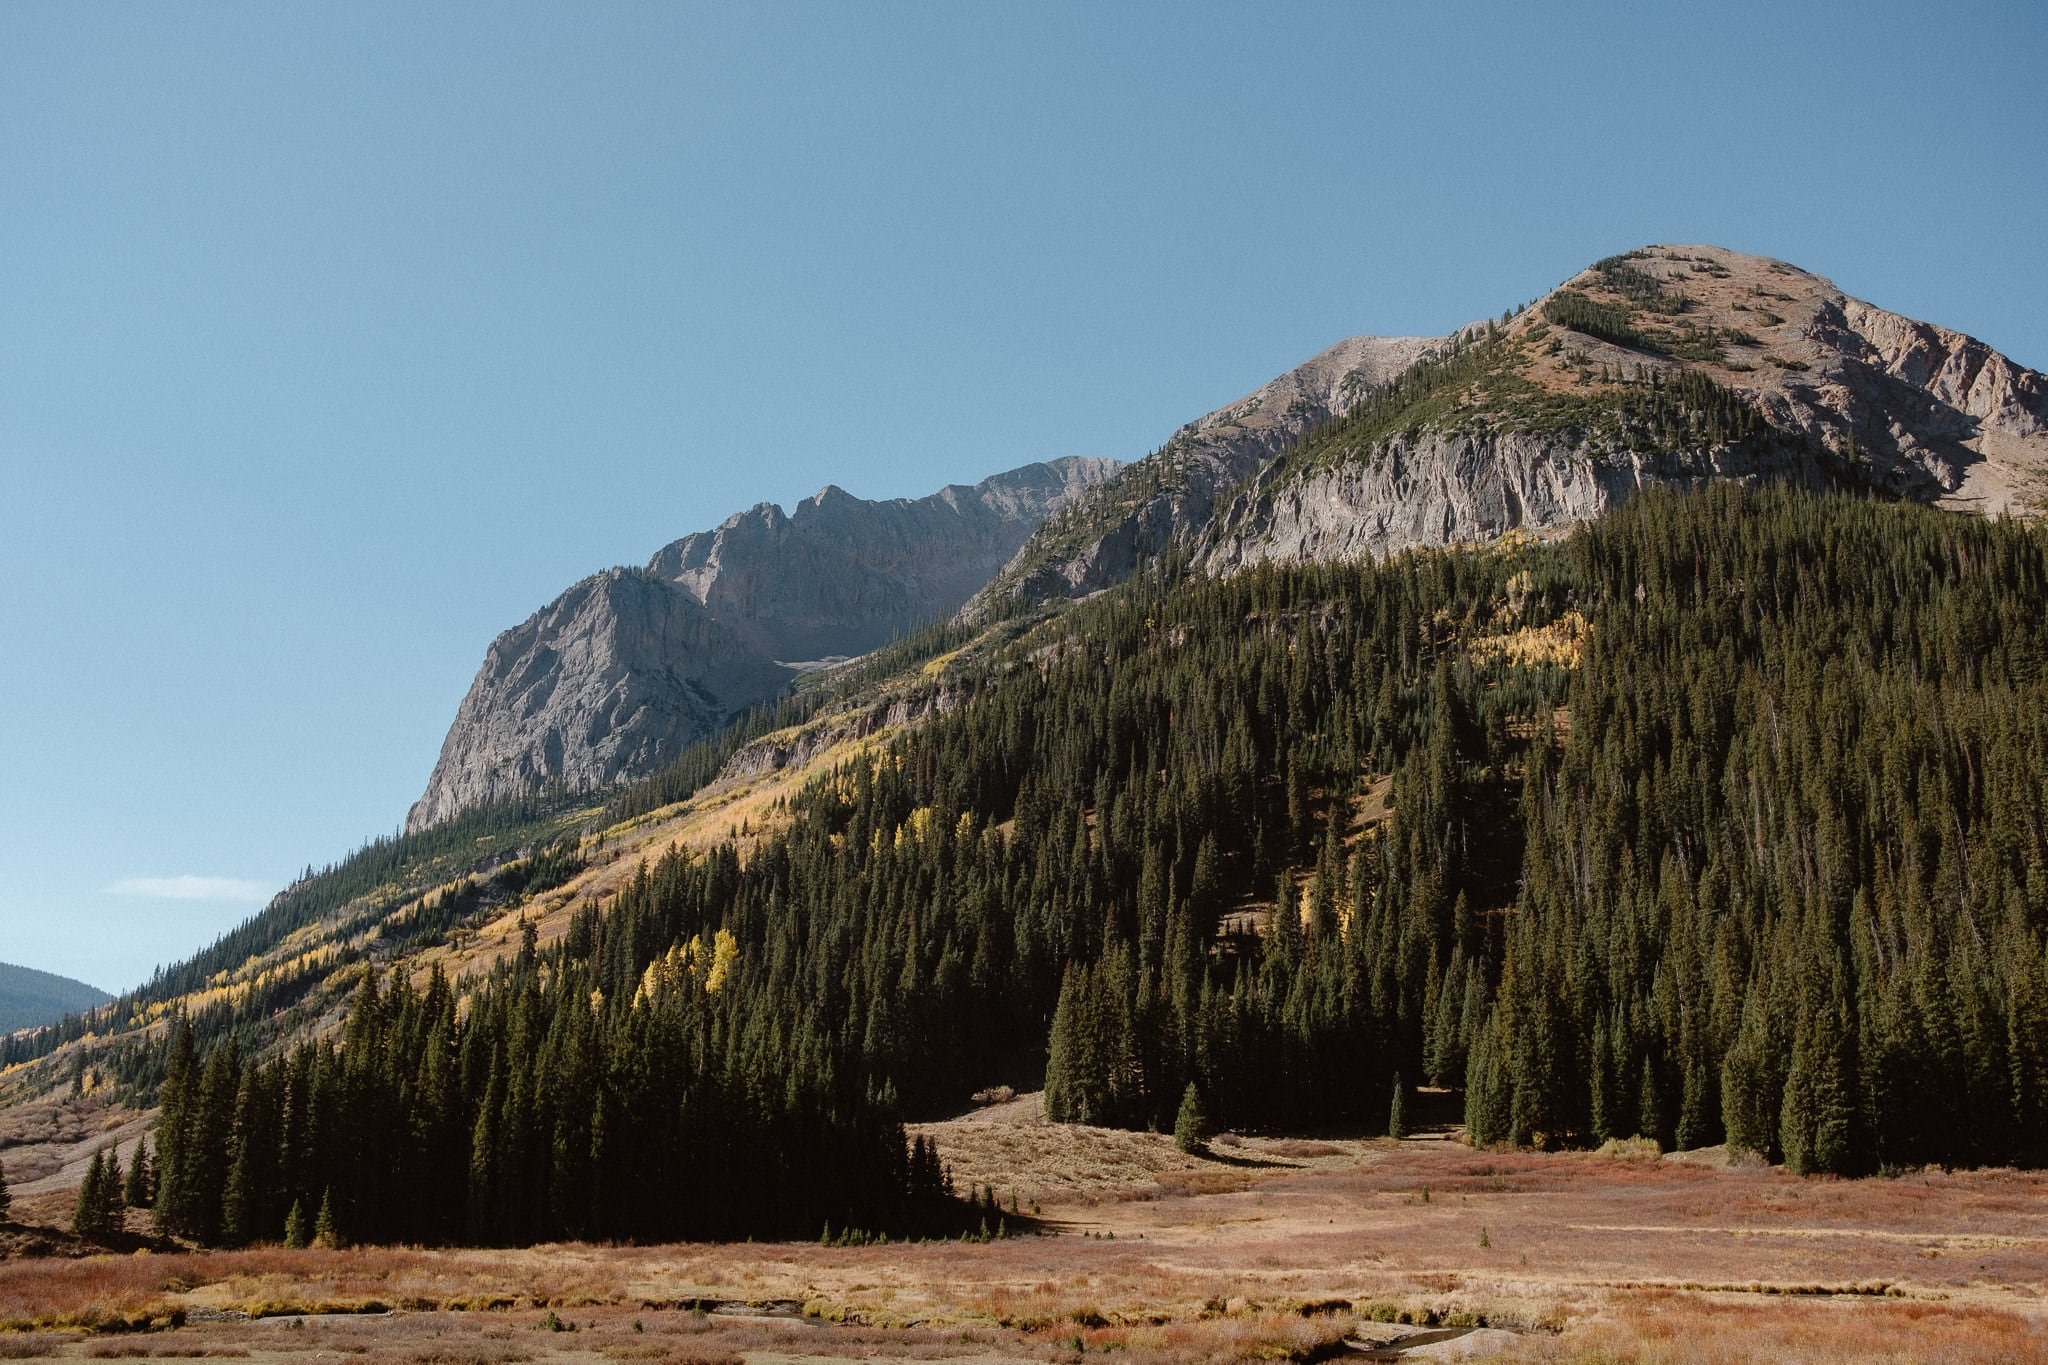 Crested Butte elopement locations, Colorado adventure wedding photographer, mountain elopement views, aspen fall colors